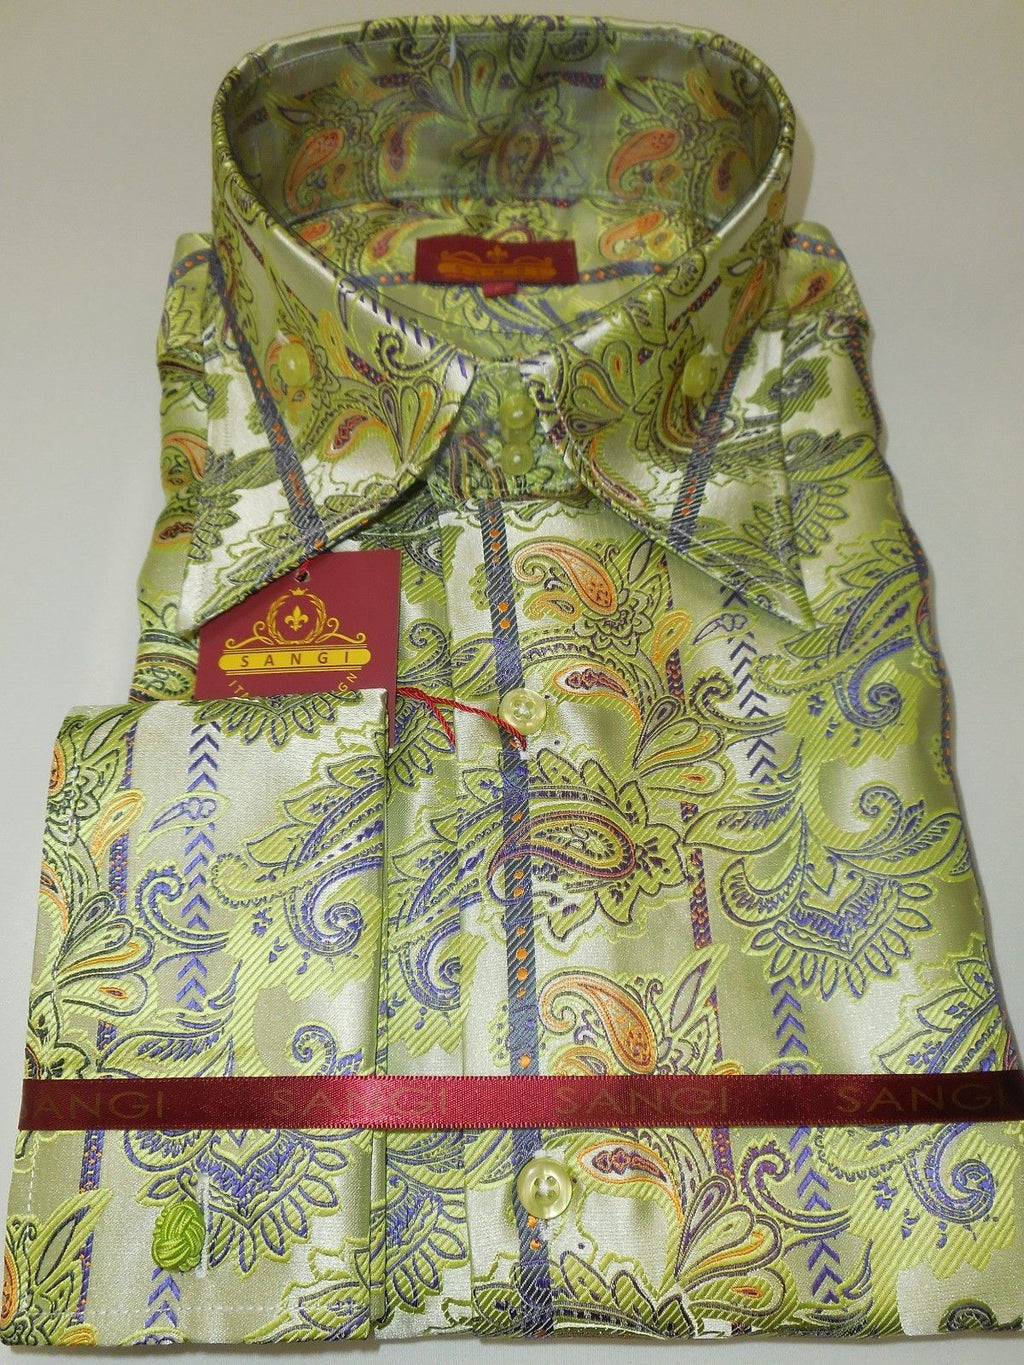 Mens Light Lime Green Paisley Flourish High Collar Cuffed Shirt SANGI 1034 - Nader Fashion Las Vegas